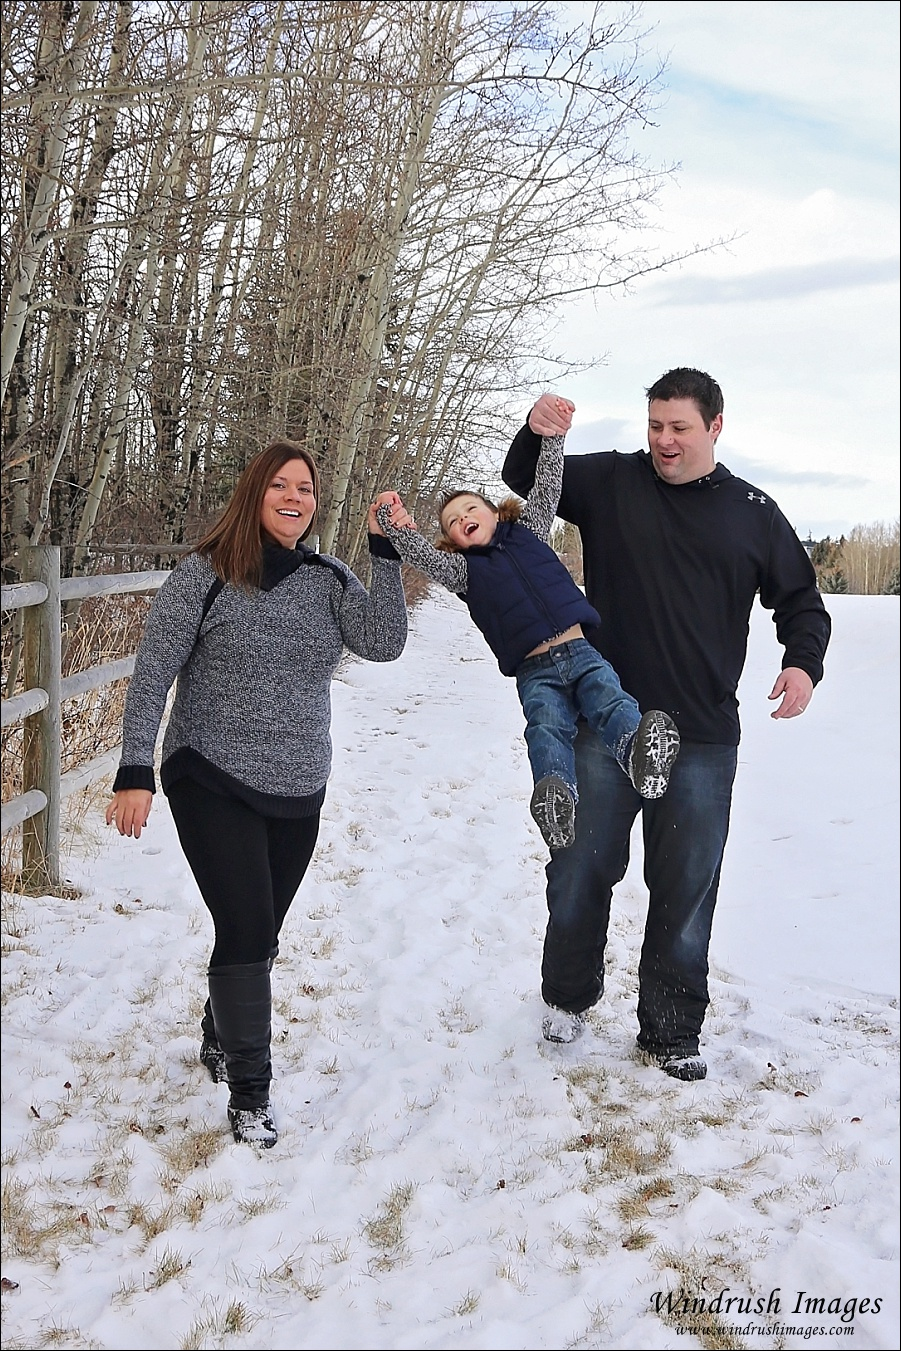 Winter family photography in Calgary of Mom and Dad swinging child in the snow while walking by a rustic wooden fence